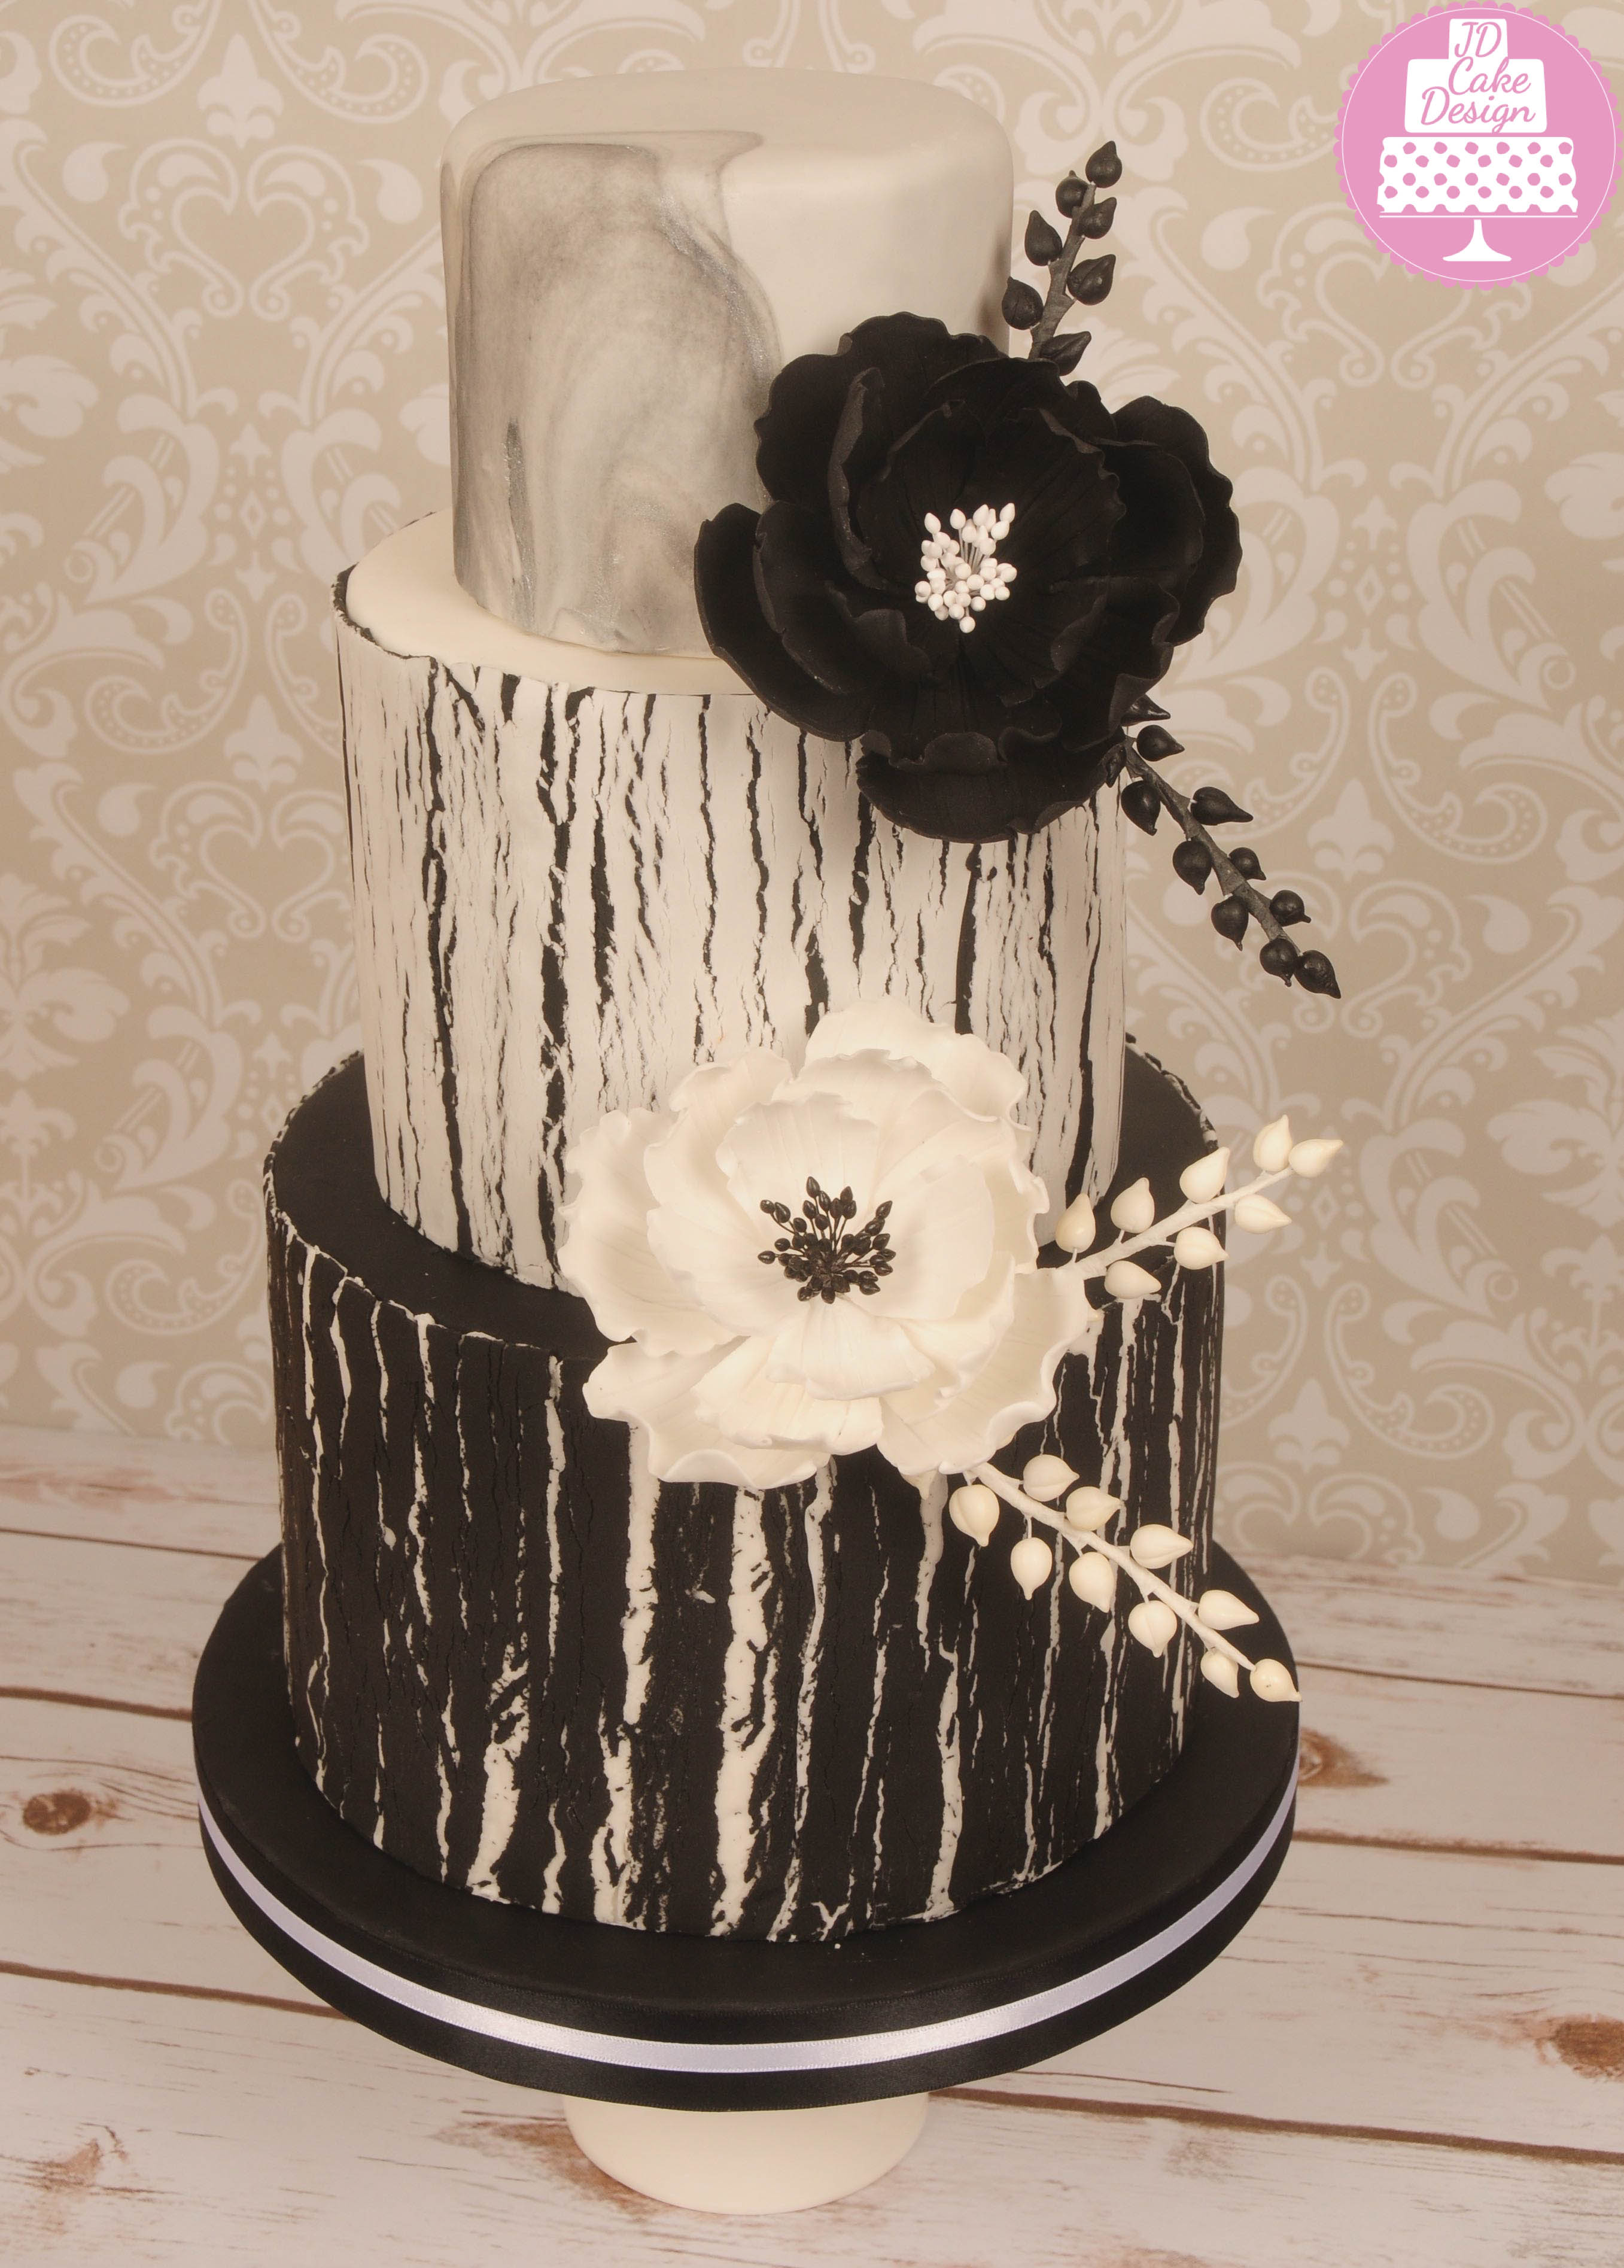 Black and white bark effect wedding cake